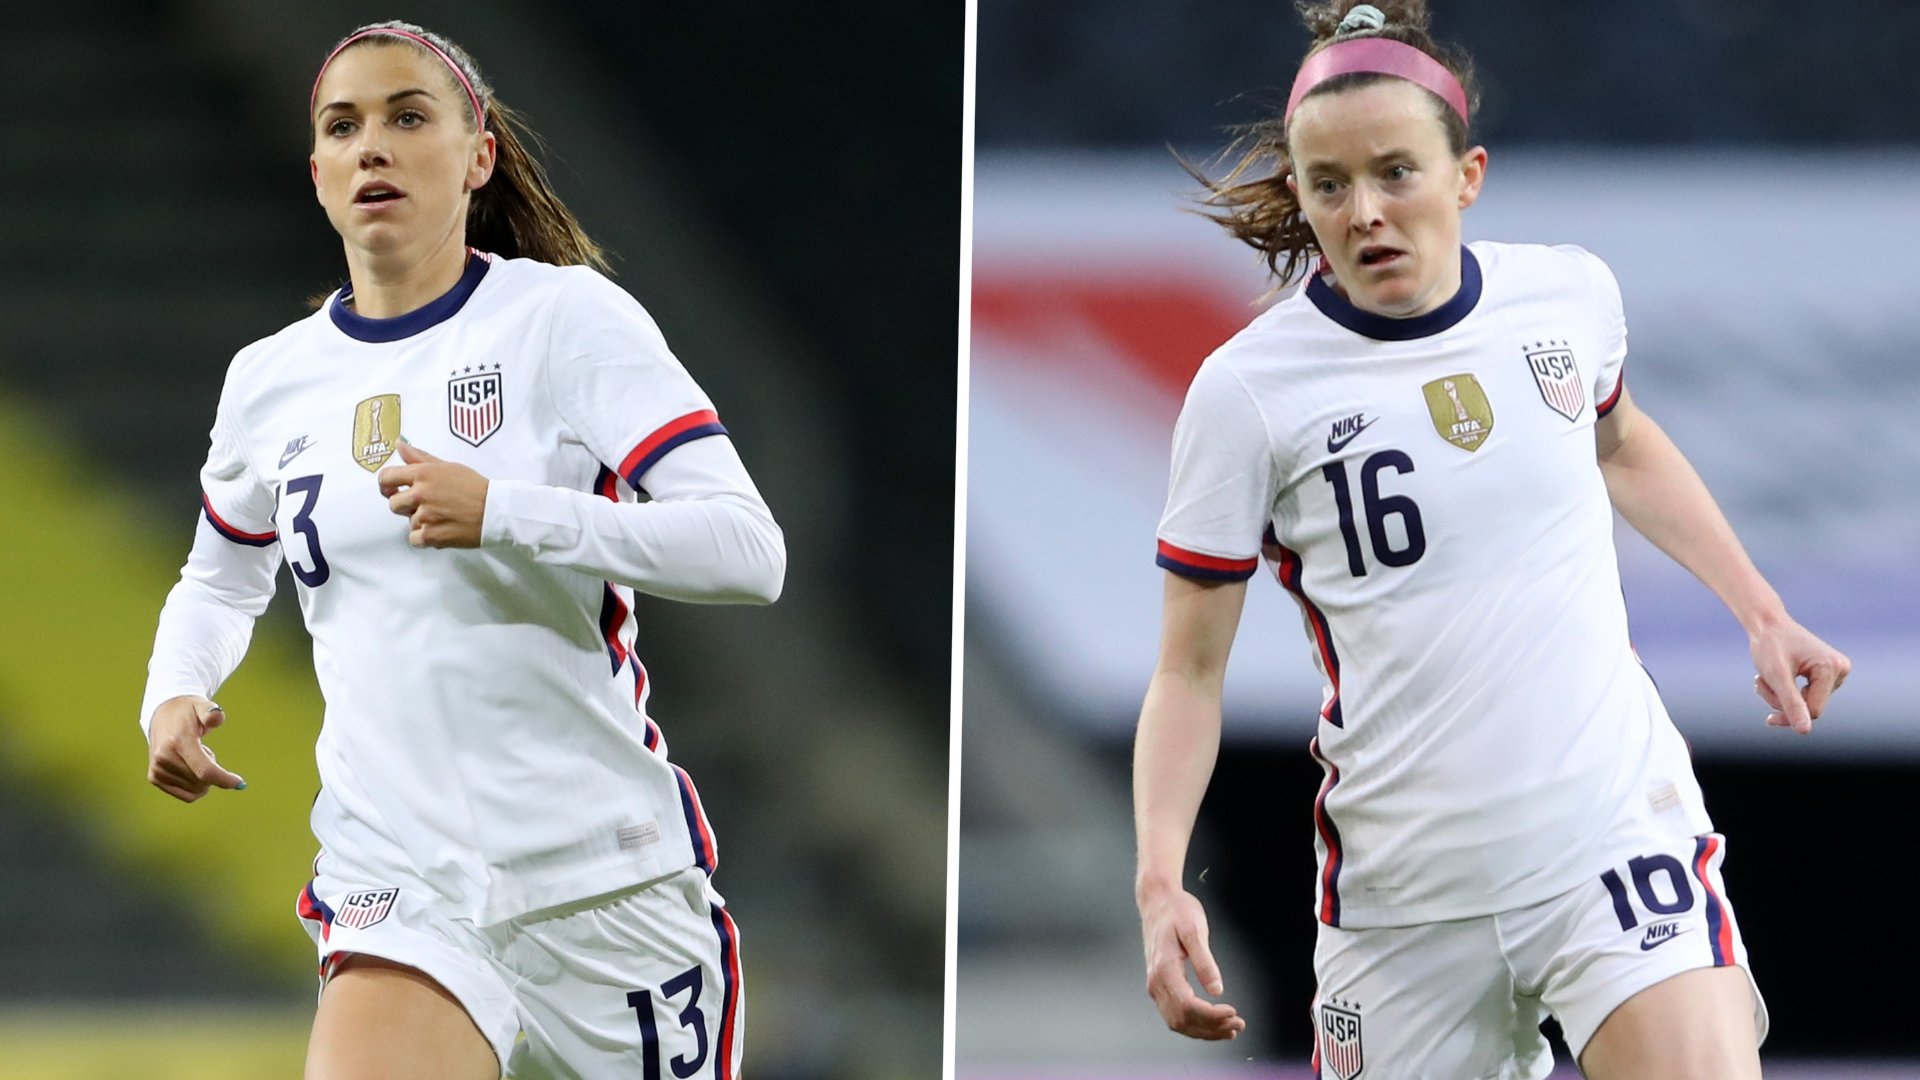 Winners and losers of Morgan, Lavelle and USWNT friendlies